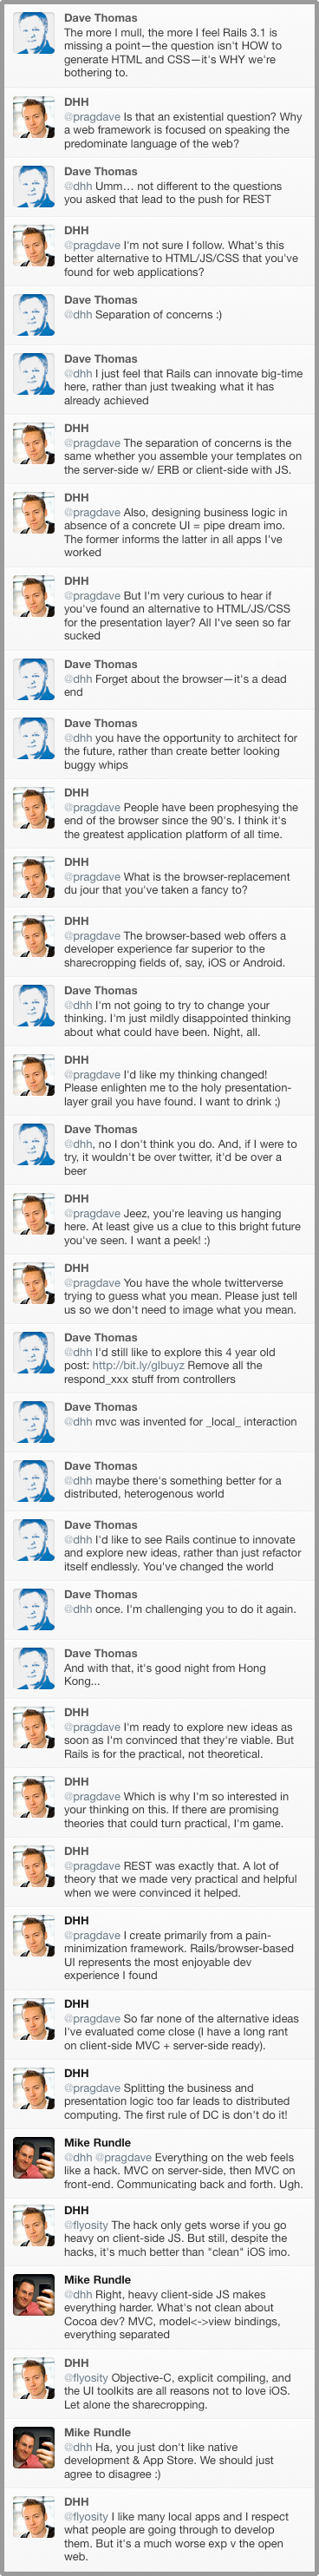 Converstation between DHH And Dave Thomas on Rails 3.1